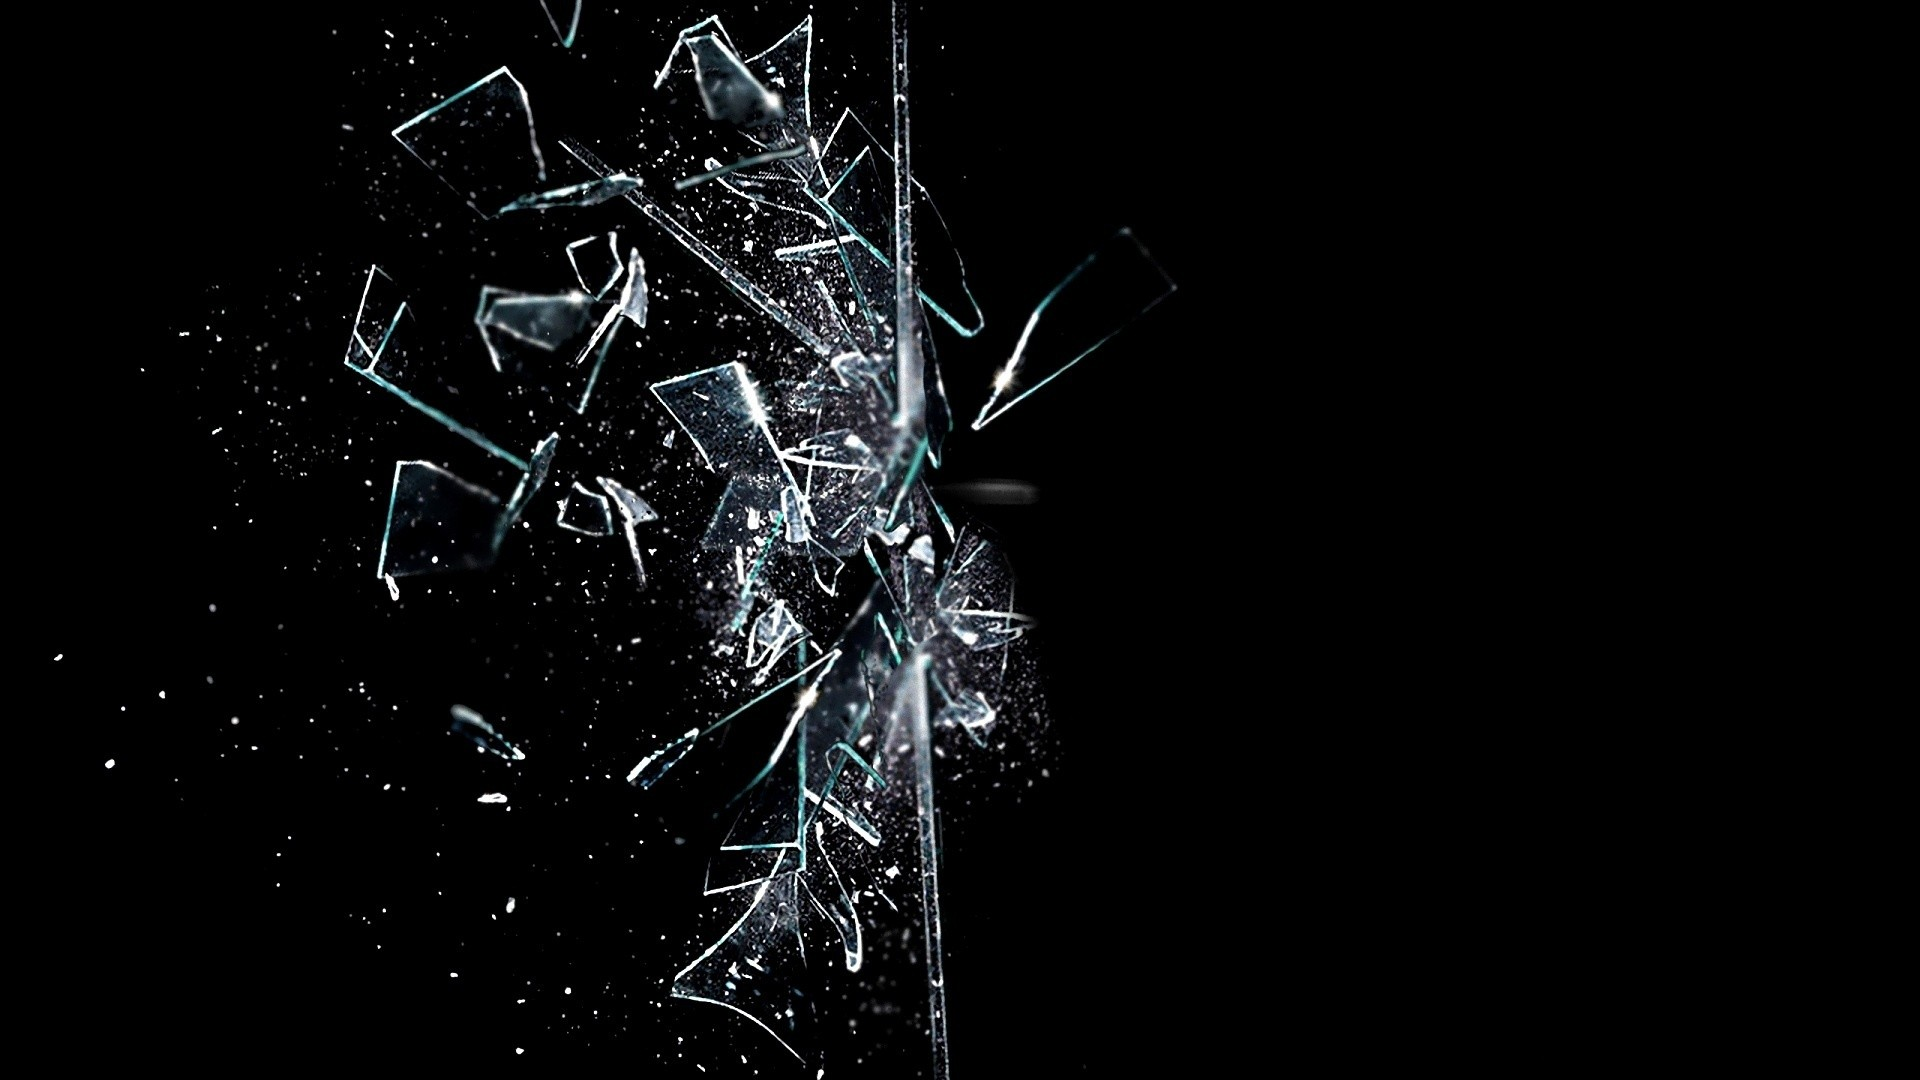 Cool Broken Glass Wallpaper 3215